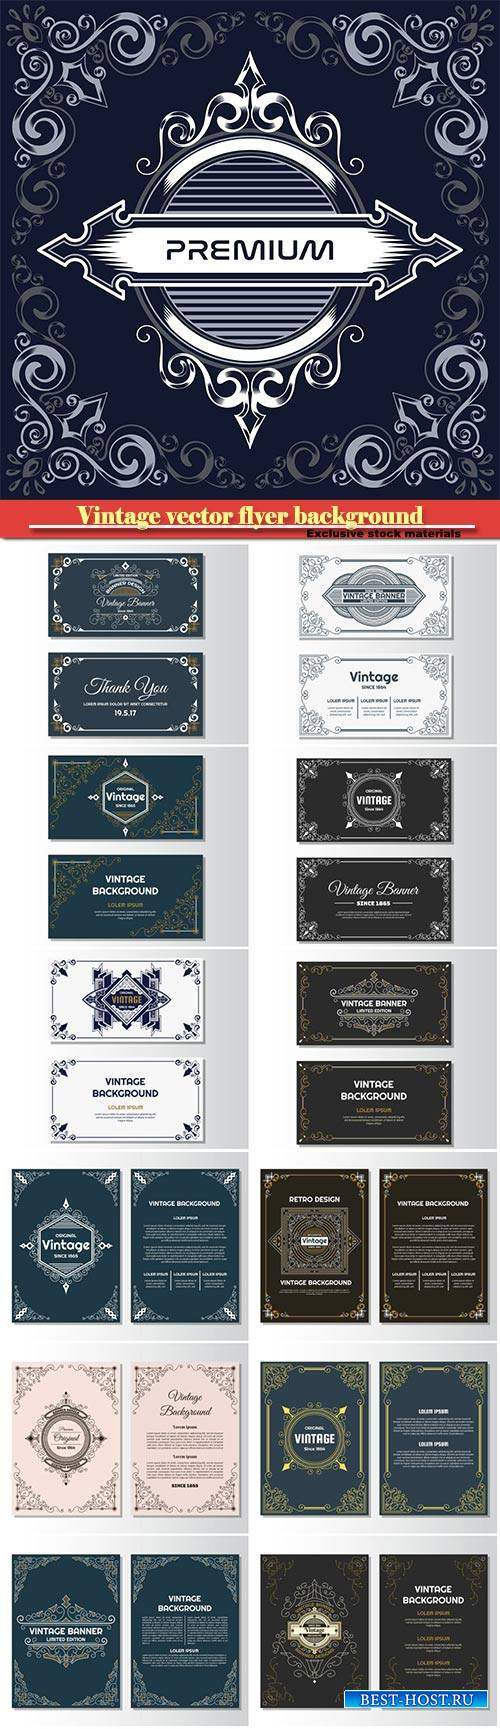 Vintage vector flyer background design template